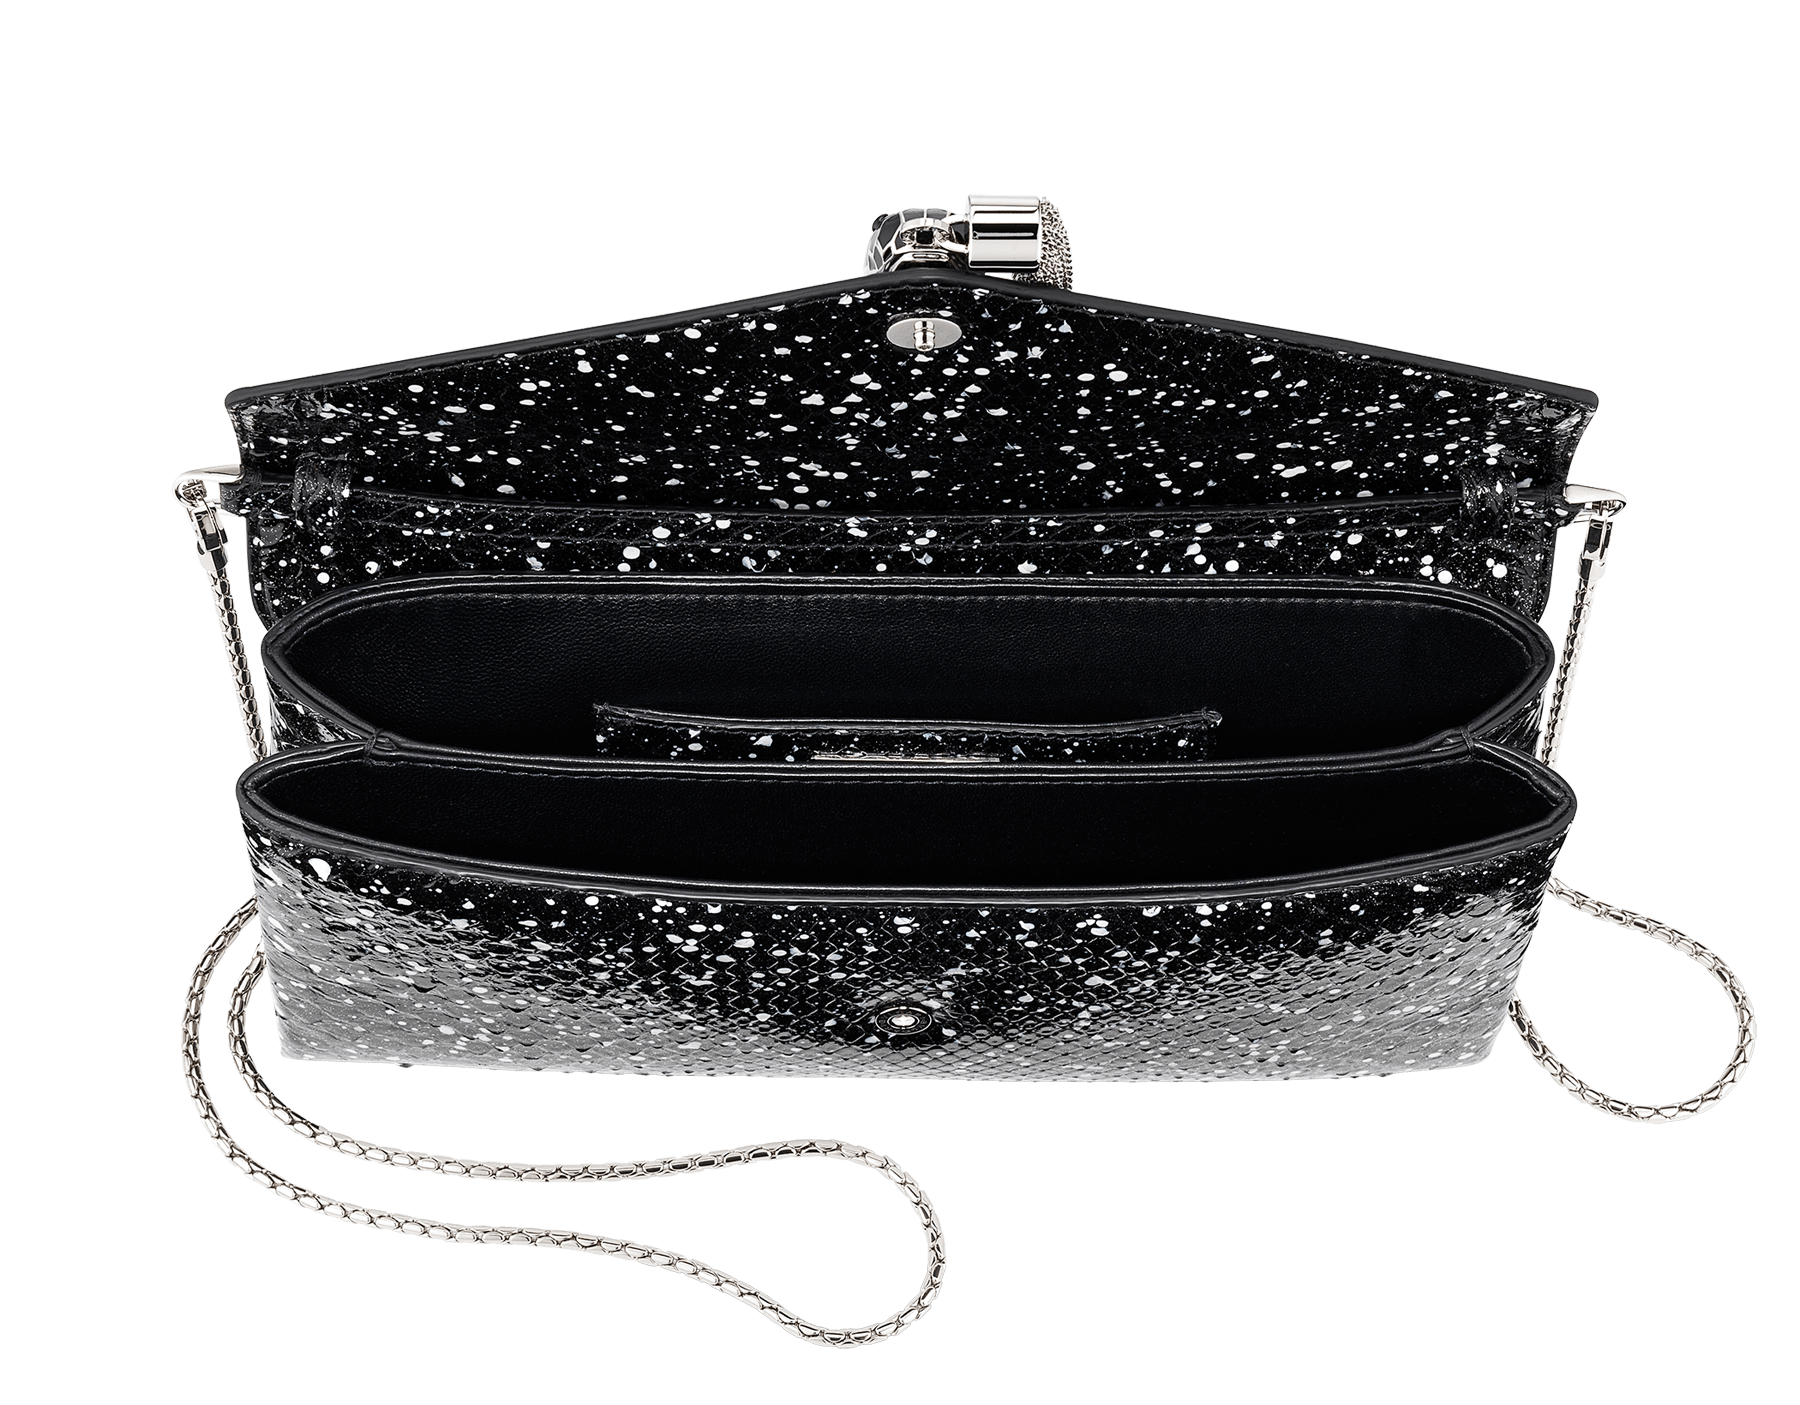 Serpenti evening clutch in black and white Cosmic python skin. Snakehead stud closure with tassel in palladium plated brass decorated with black and white enamel, and black onyx eyes. 288528 image 4